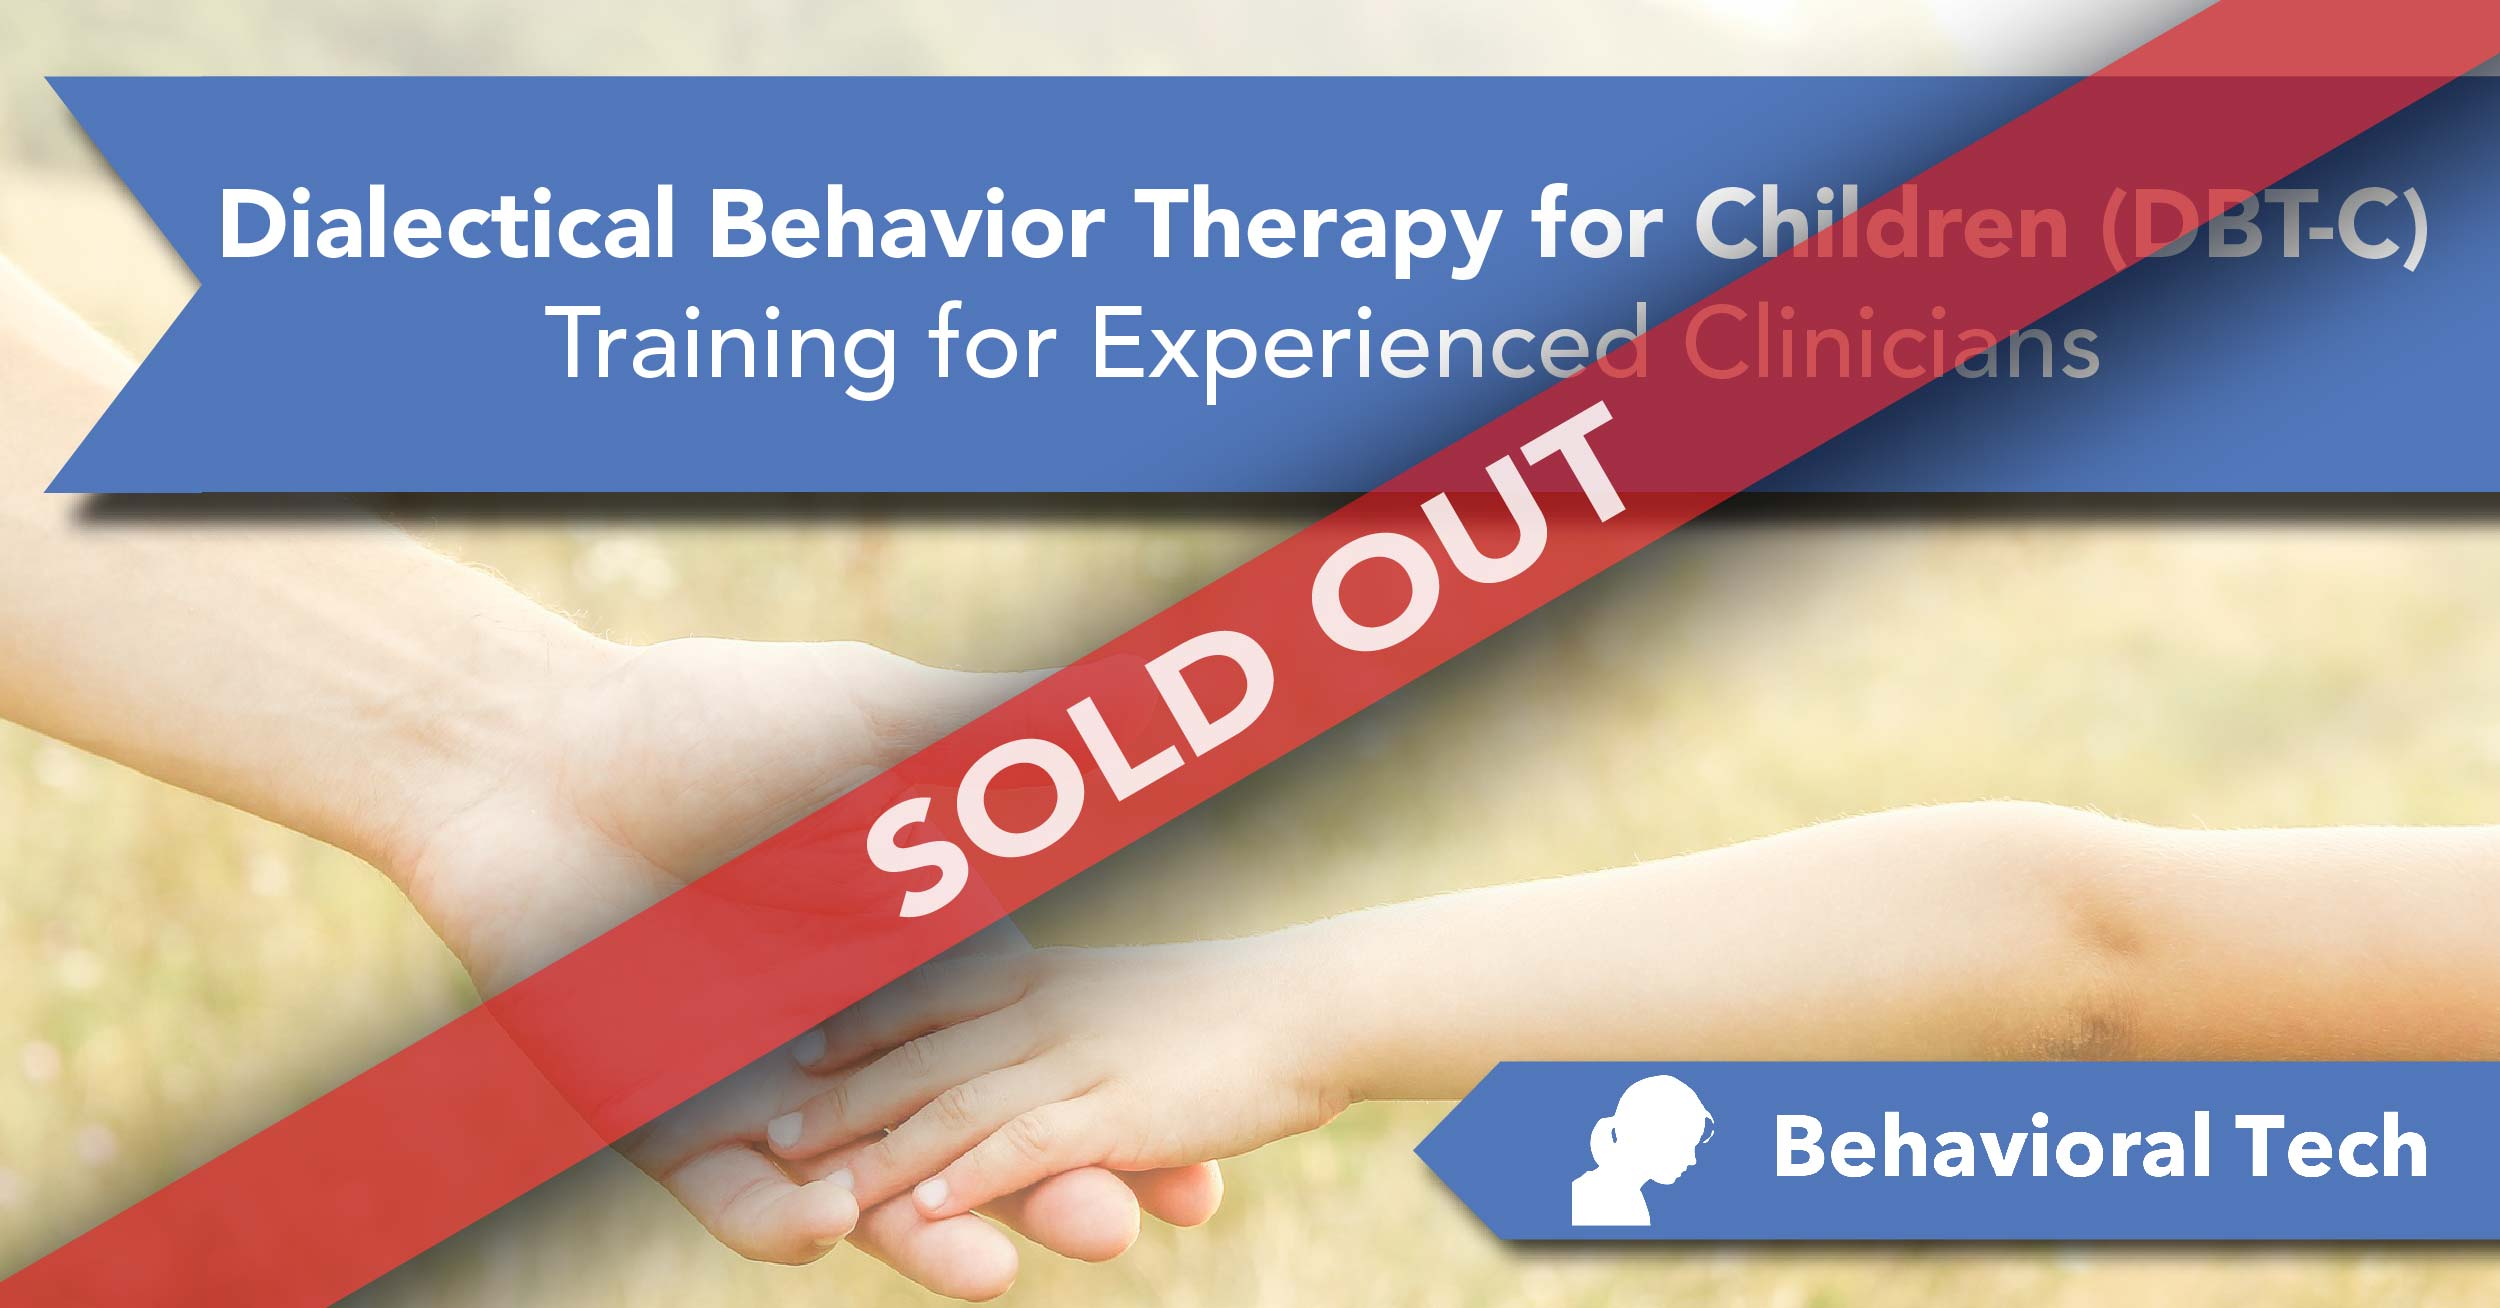 Vacationdialectical Behavioral Training